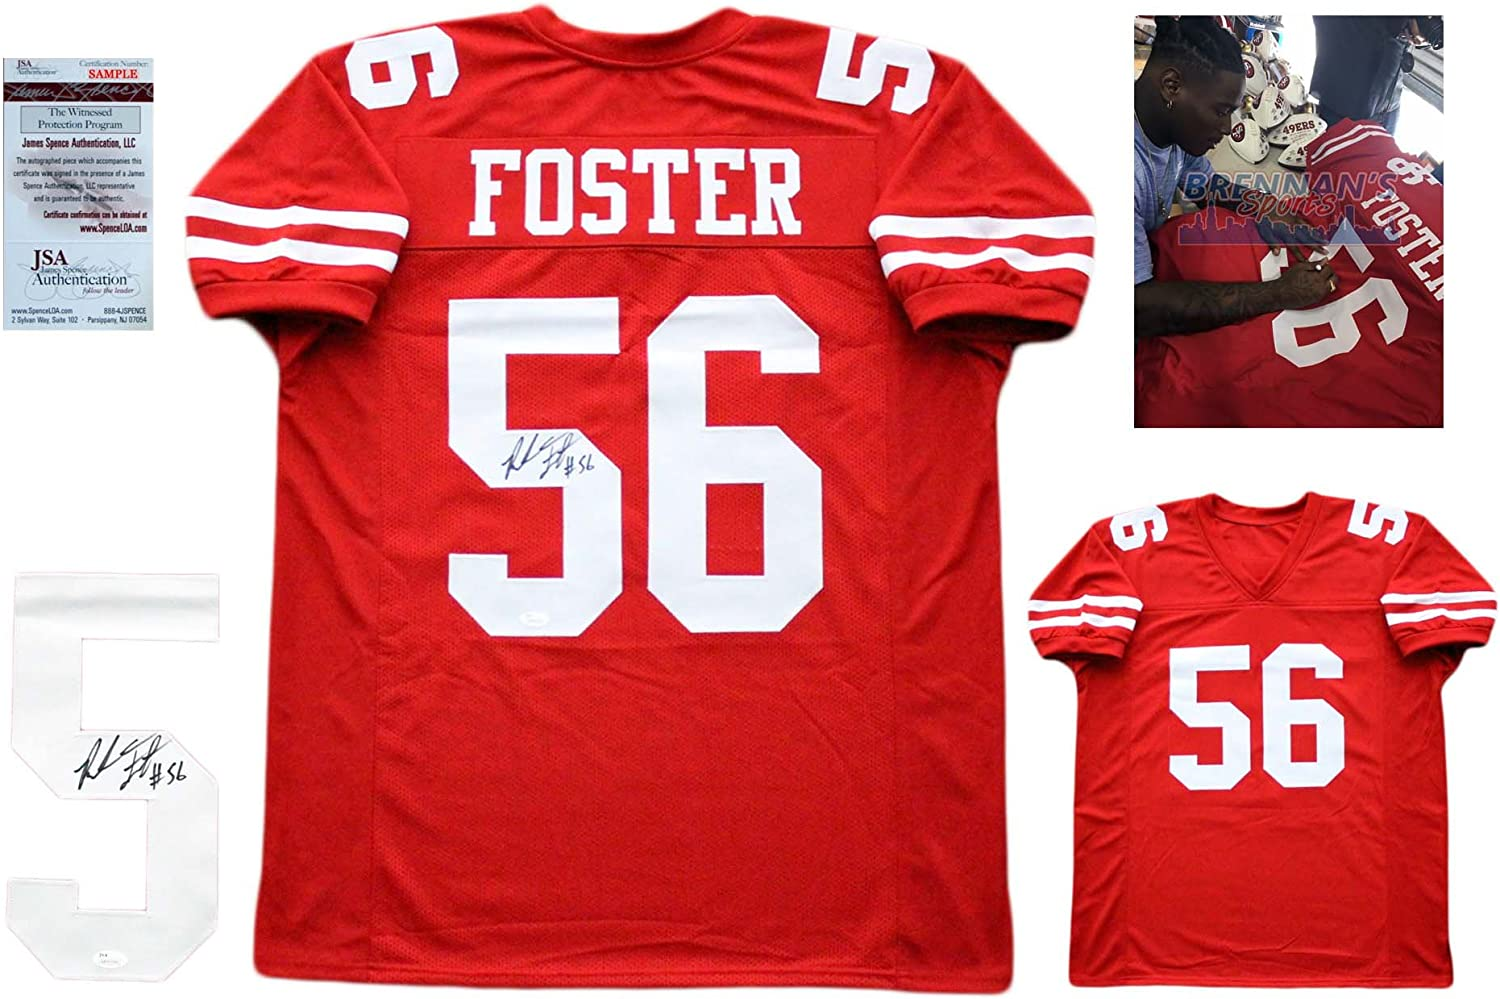 Reuben Foster Signed Custom Jersey - JSA Autographed w/ Photo - Red